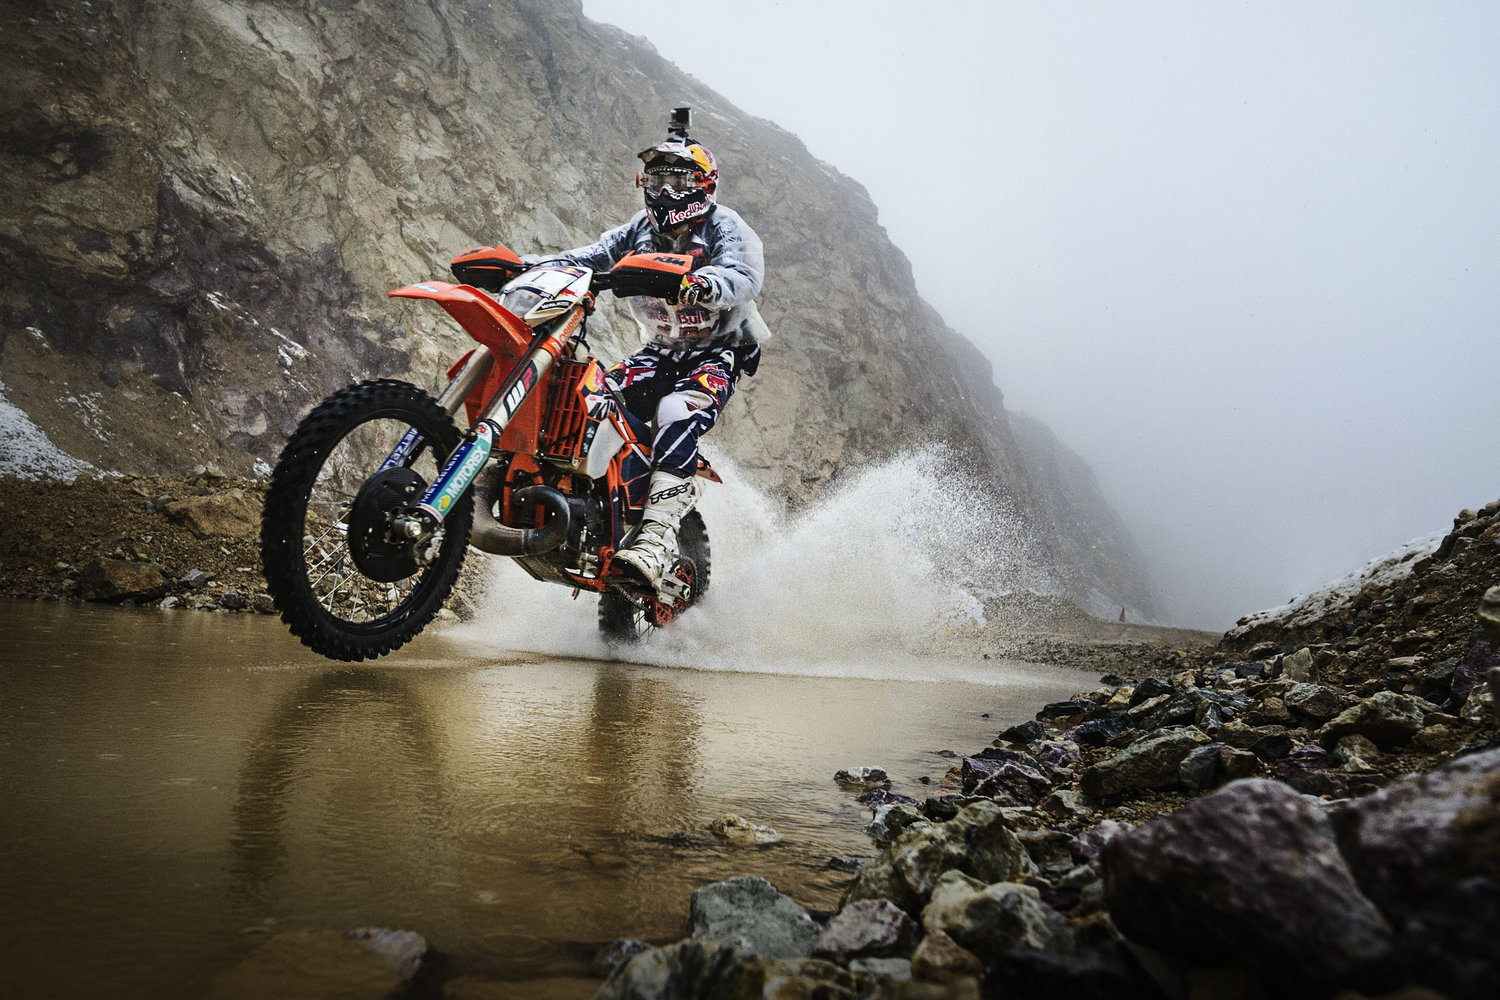 Take a look back at the top crashes and biggest slams from one of the most grueling hard enduro races on earth, the Red Bull Hare Scramble.